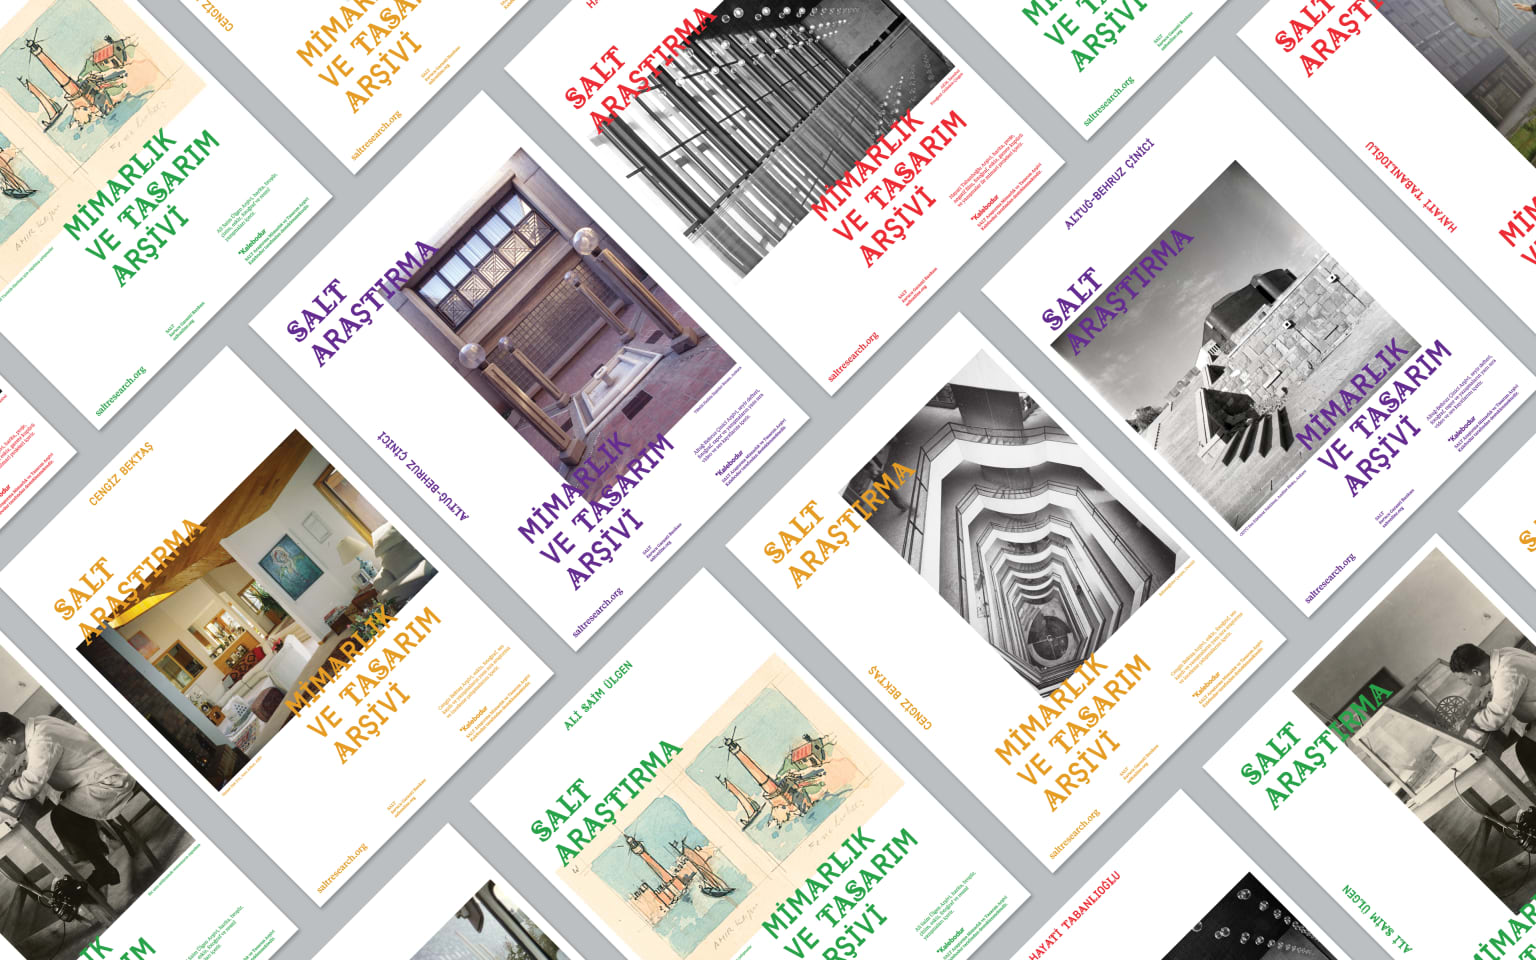 SALT Research Architecture and Design Archive Communication Campaign